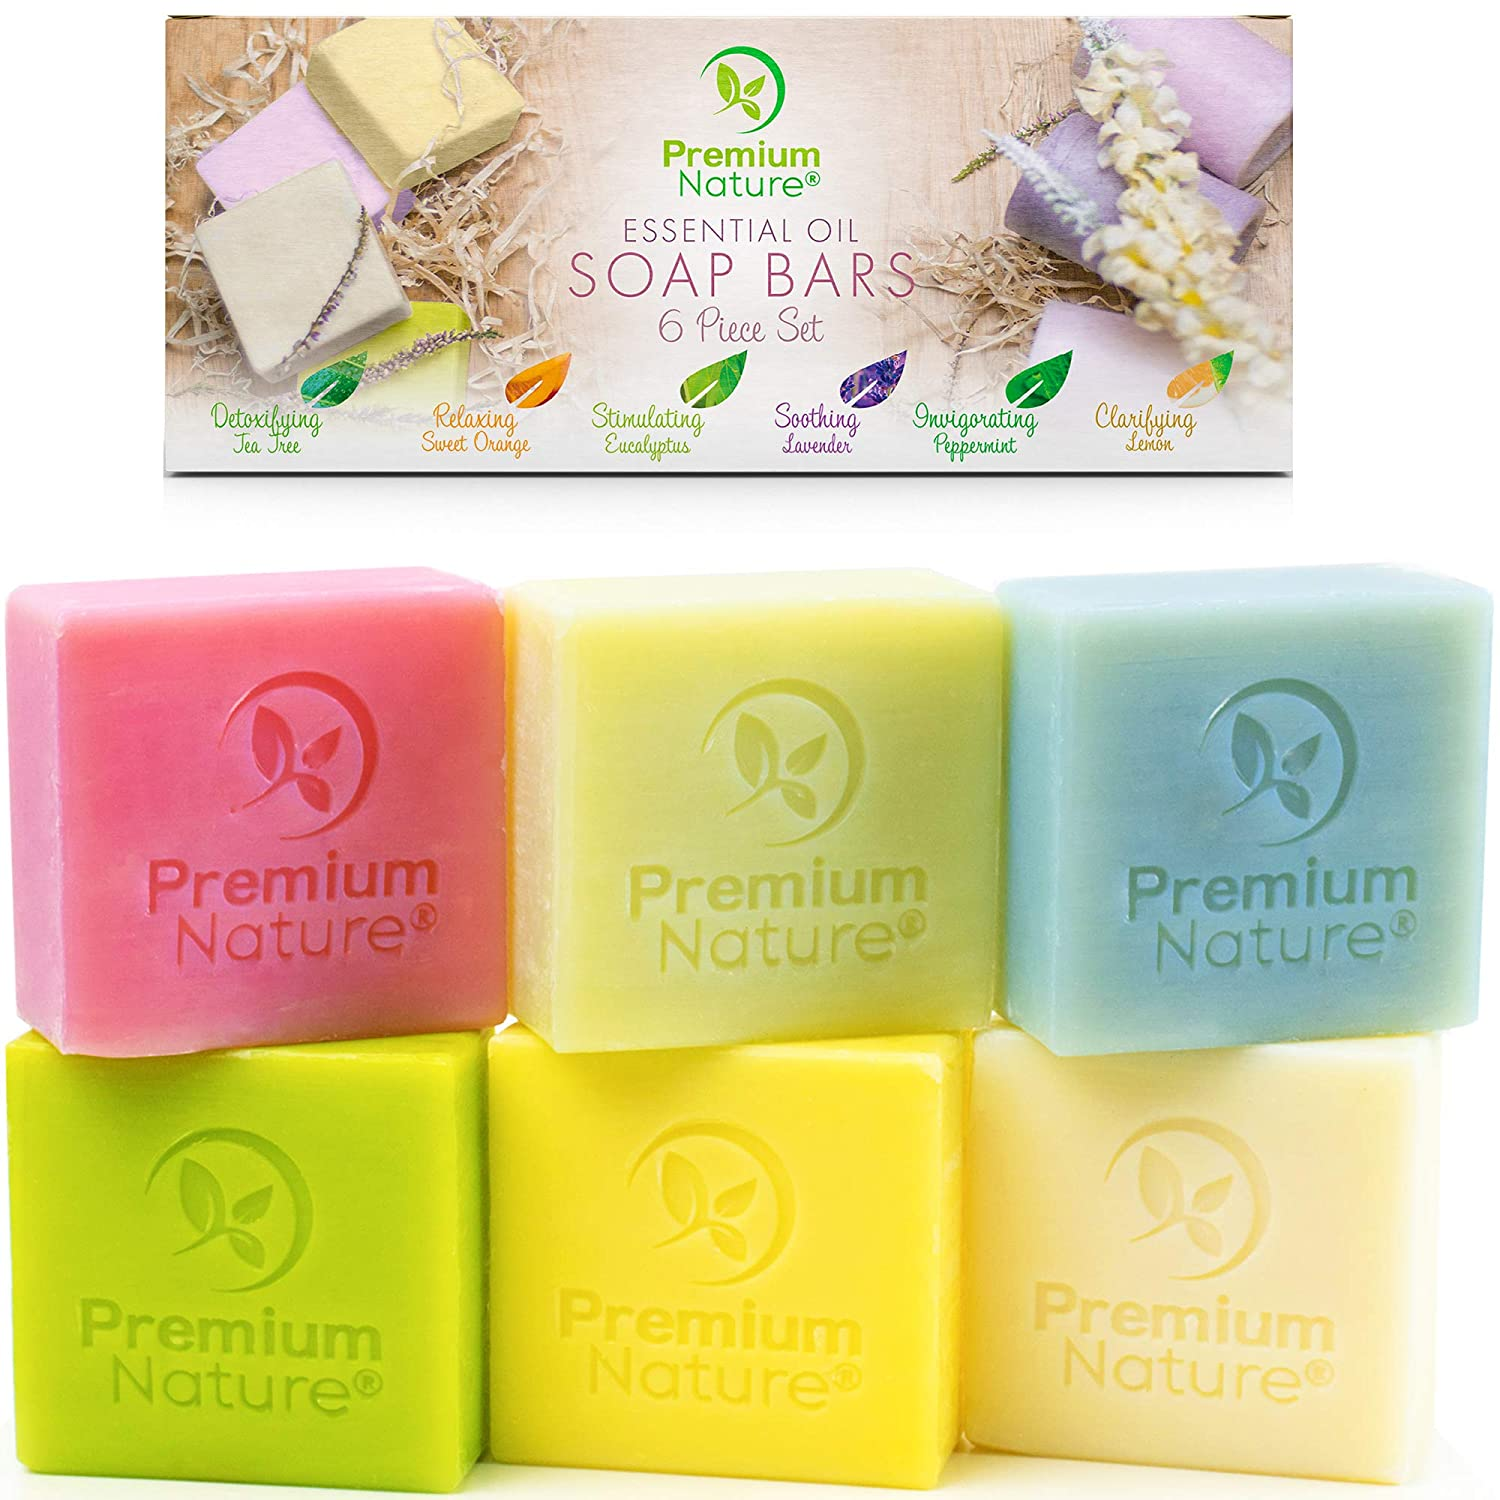 Bar Soap Body Bath Eczema - 6 Pc Natural Hand Face Soap Shea Butter, Soap Variety Gift Box Set Vegan Bath Soap with Essential Oil Sensitive Skin Moisturizer for Women Men Sisal Saver Included